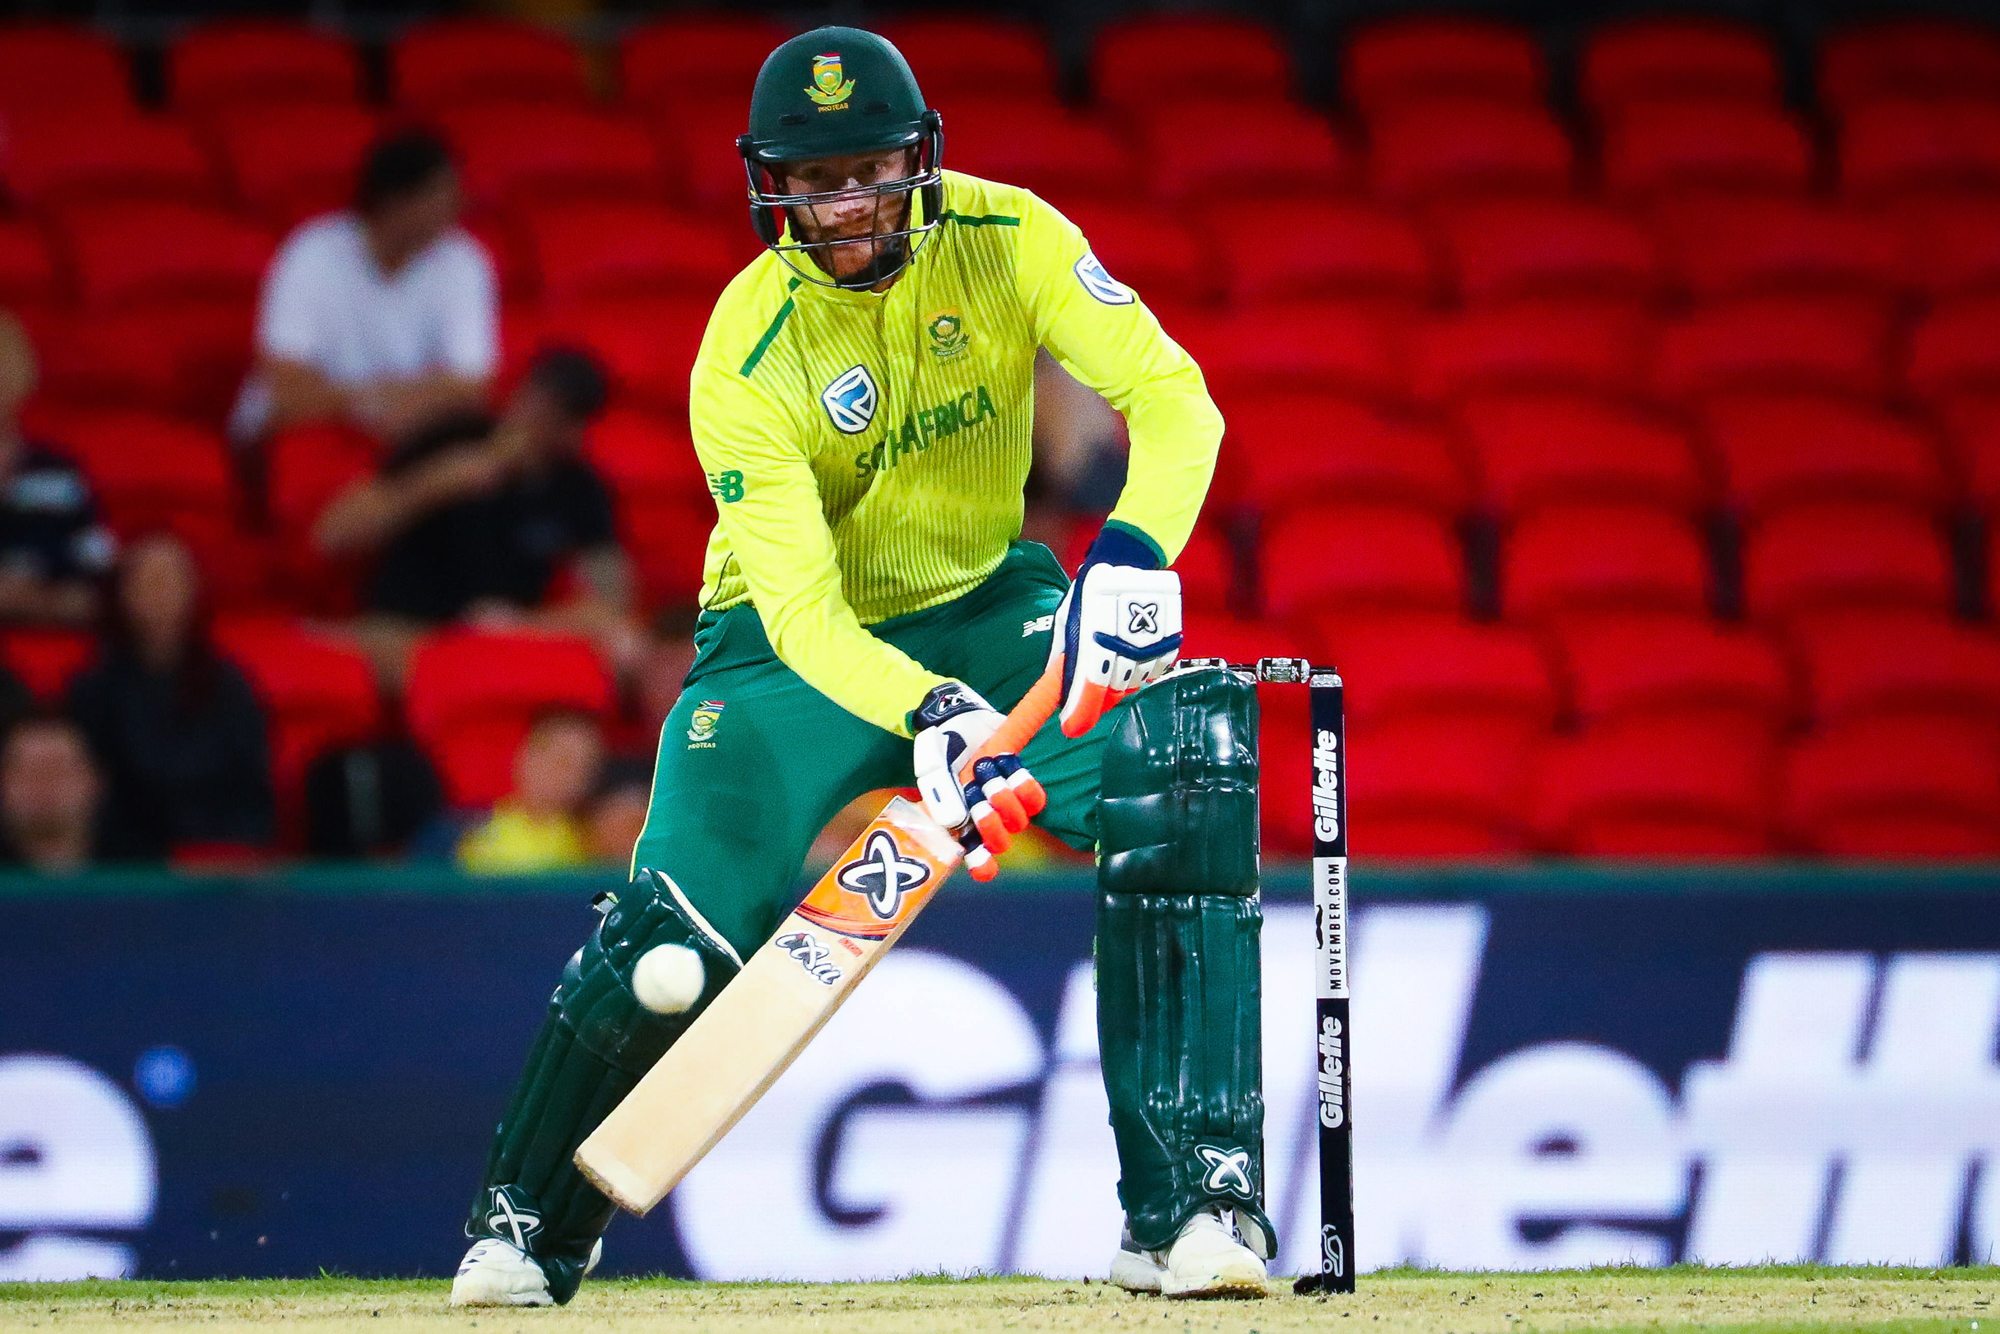 Heinrich Klaasen of South Africa plays a shot during the T20 international cricket match between Australia and South Africa at Metricon Stadium on the Gold Coast on November 17, 2018. (Photo by Patrick HAMILTON / AFP) / -- IMAGE RESTRICTED TO EDITORIAL US